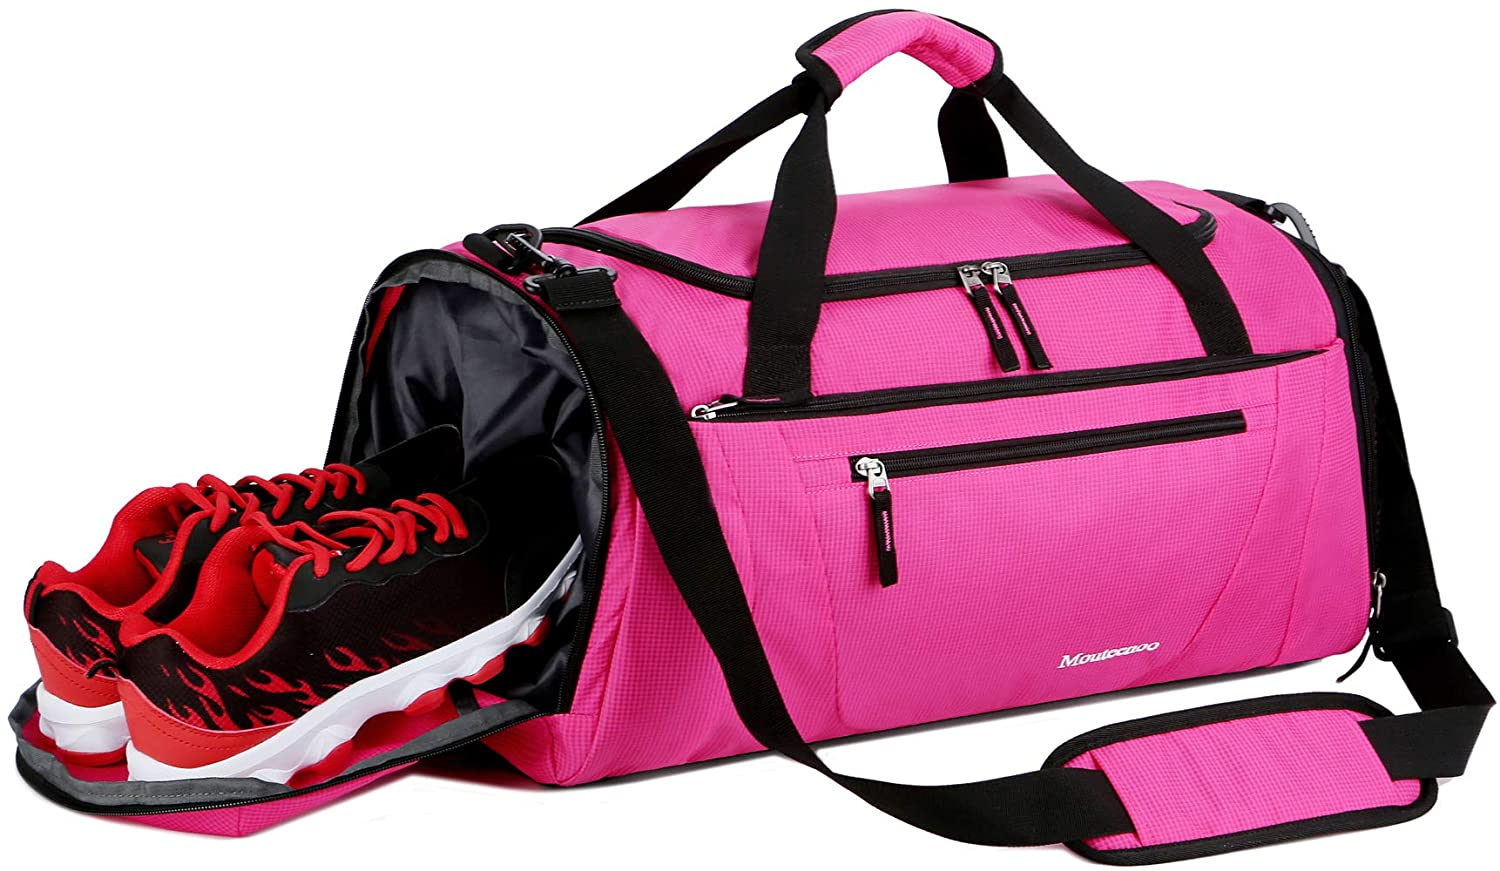 a58ada6ac64 Mouteenoo Gym Bag 40L Sports Travel Duffel for Men and Women with ...